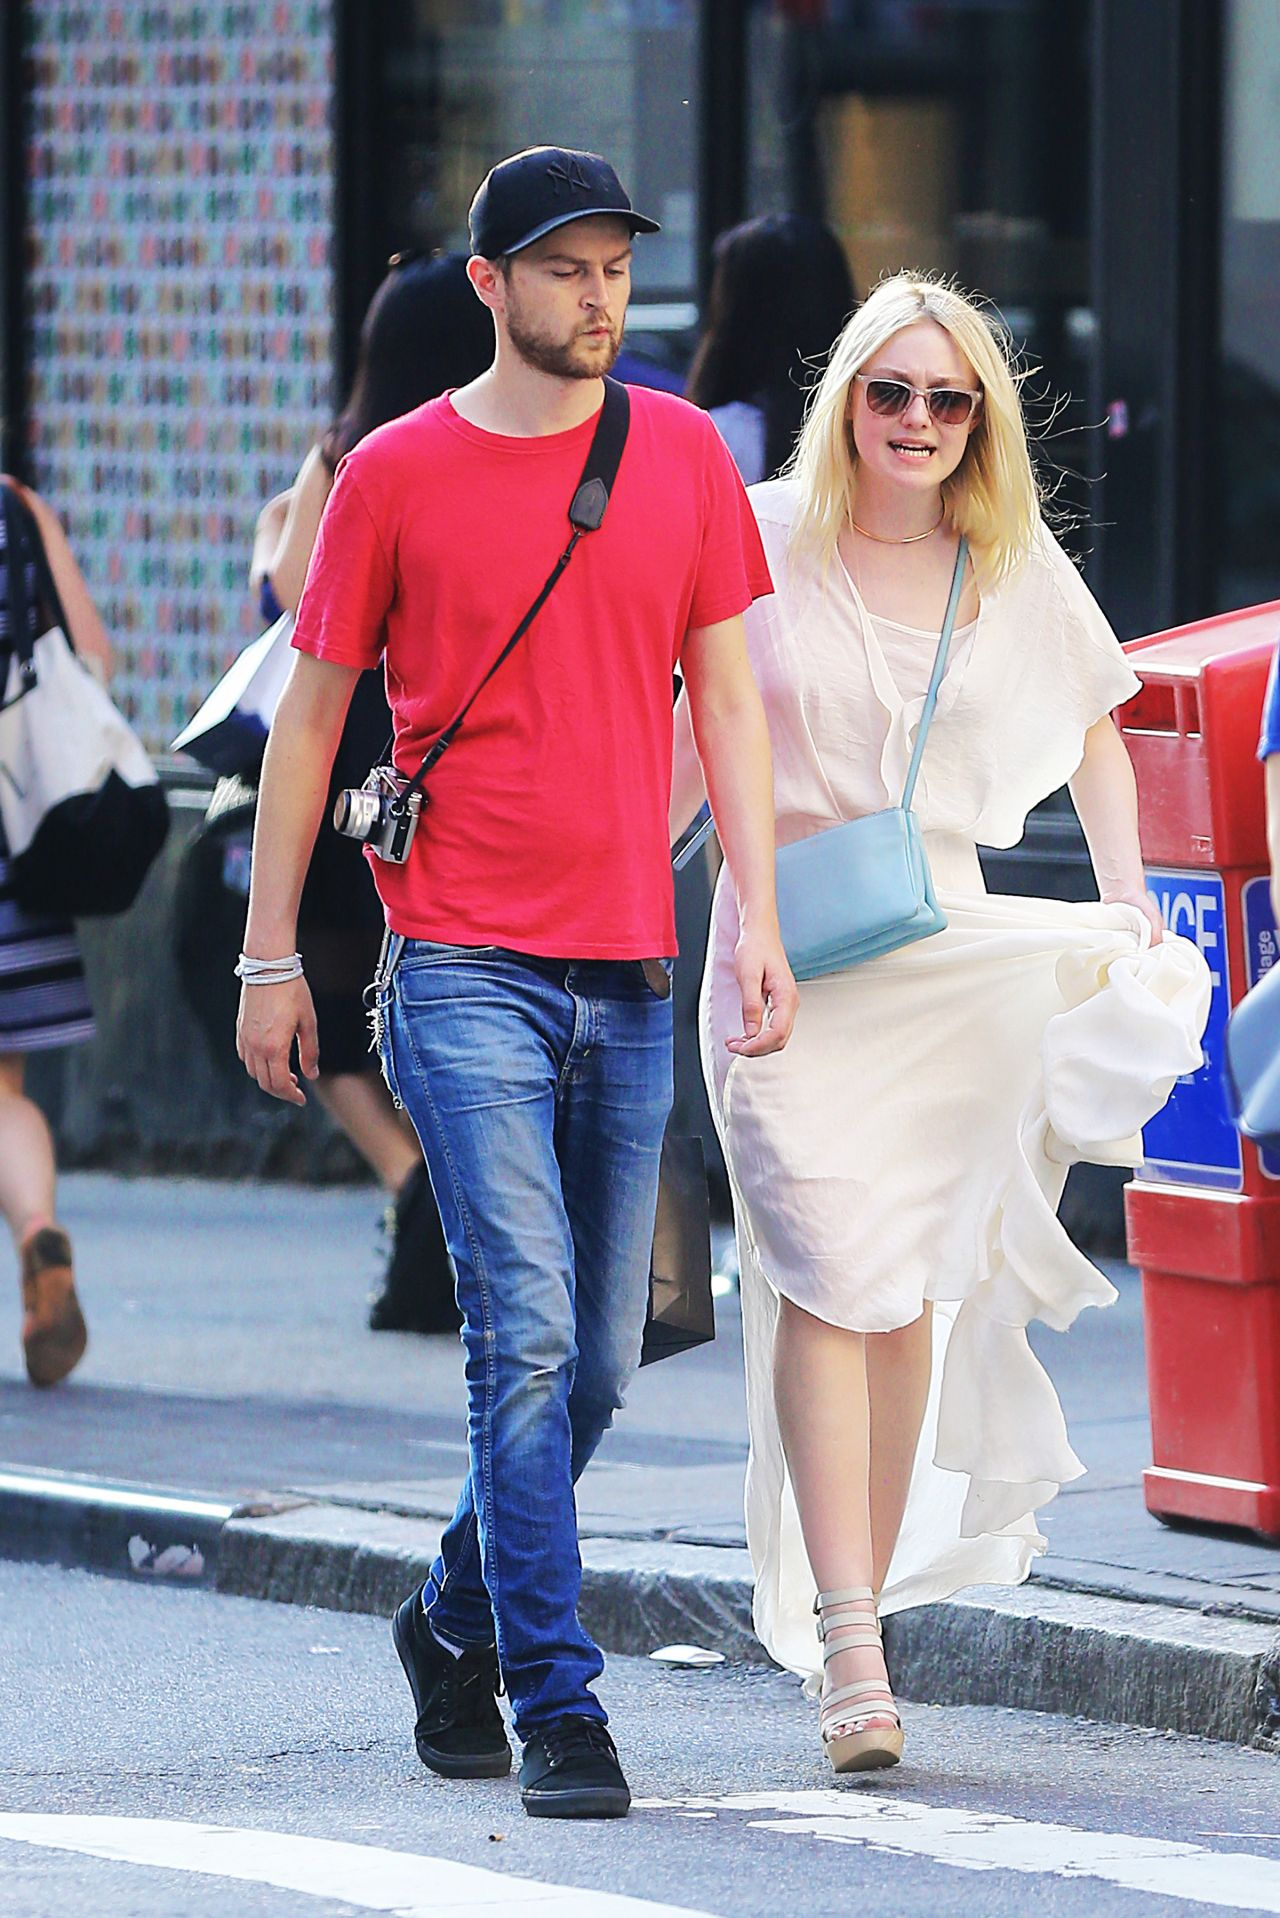 Dakota Fanning and Her Boyfriend Out in NYC - July 2014